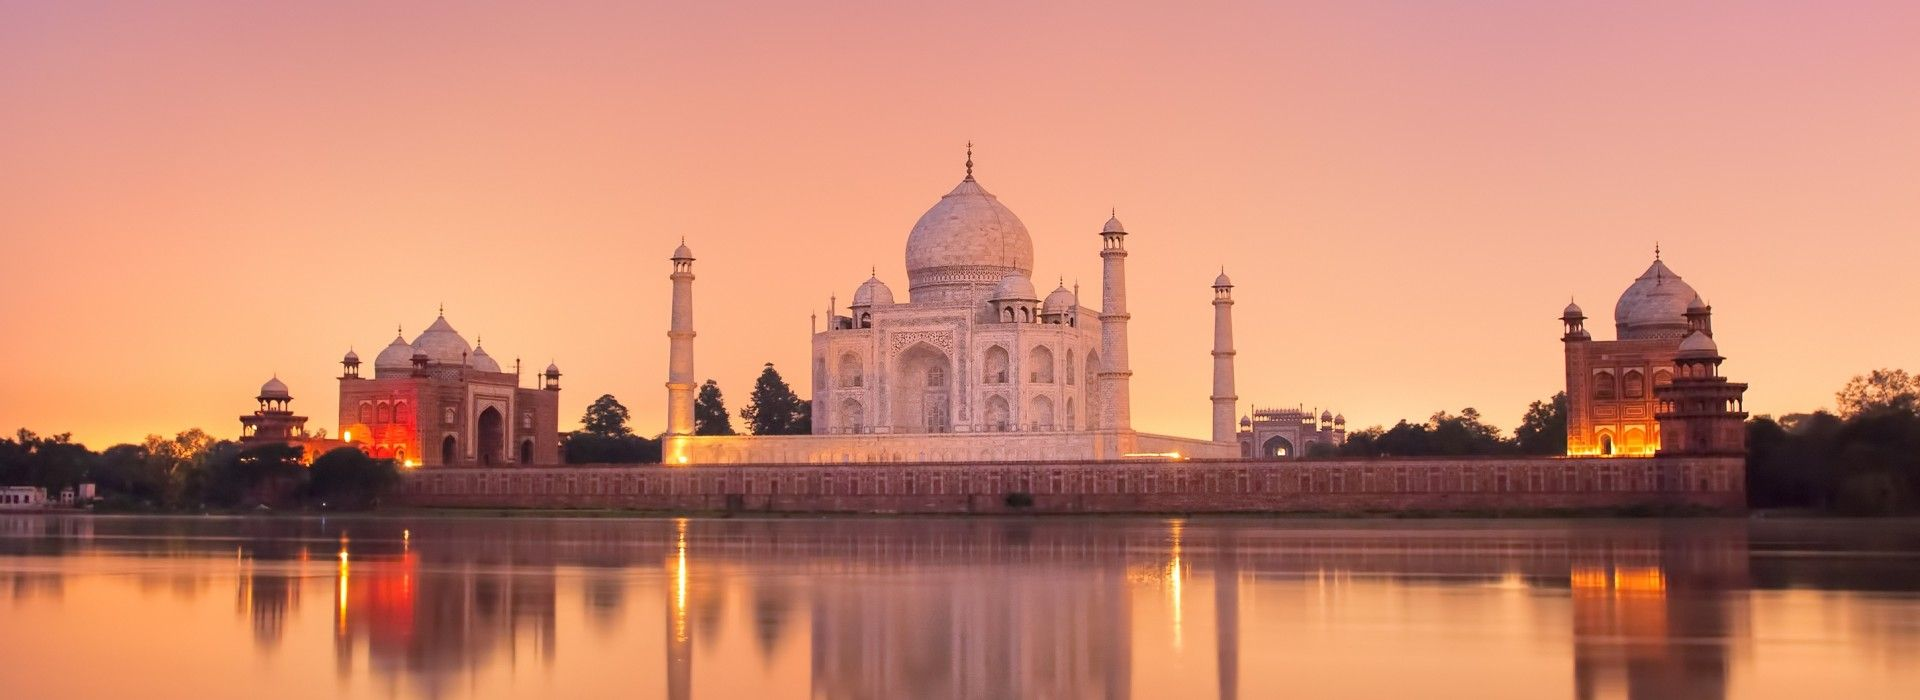 The Golden Triangle tour in India